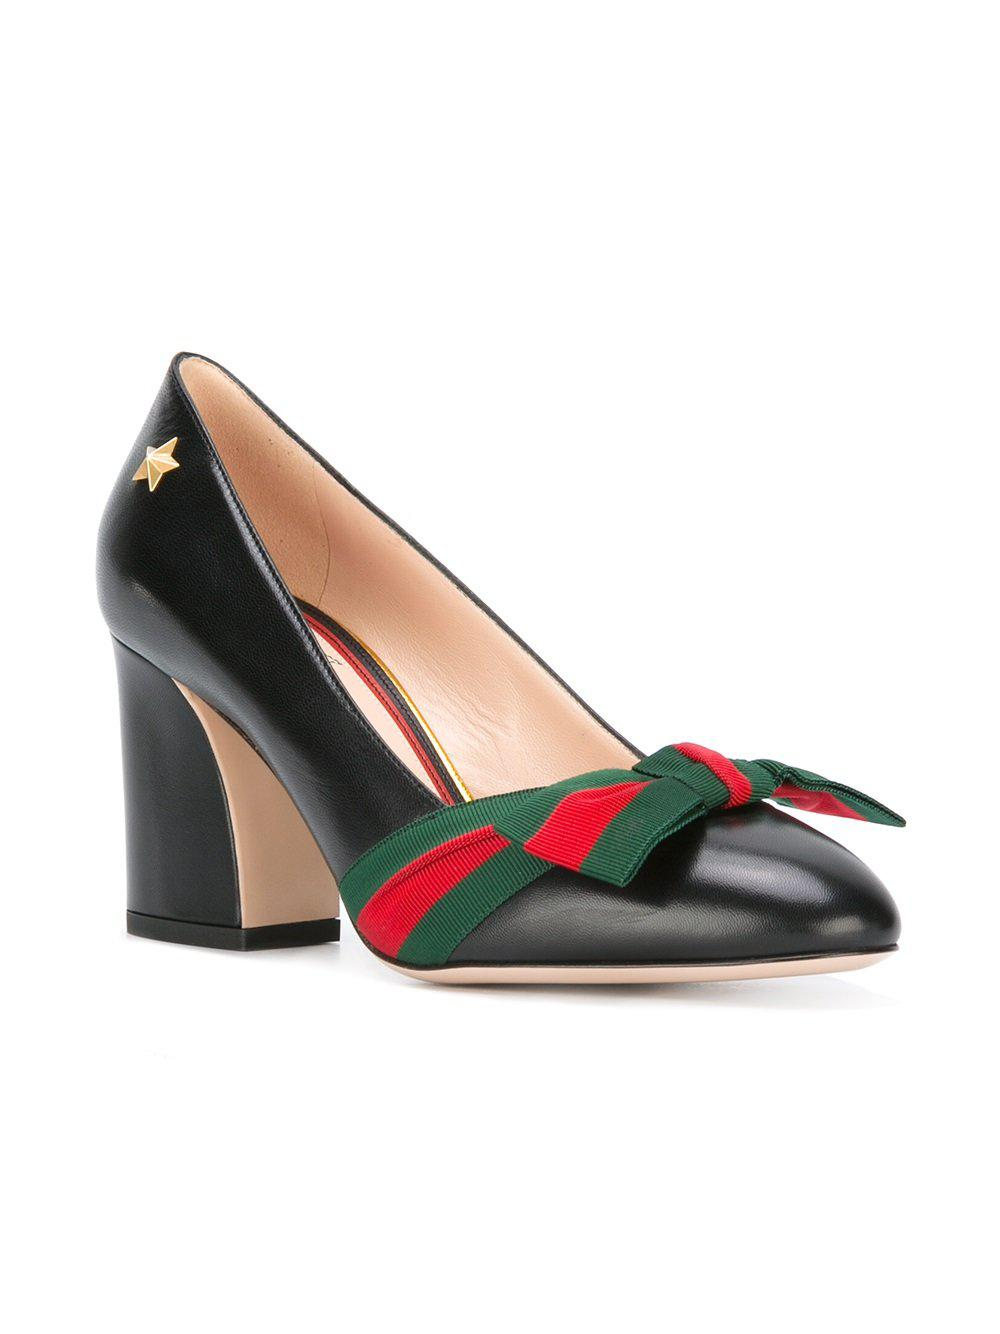 255ed65c965d Lyst - Gucci Web Bow Pumps in Black